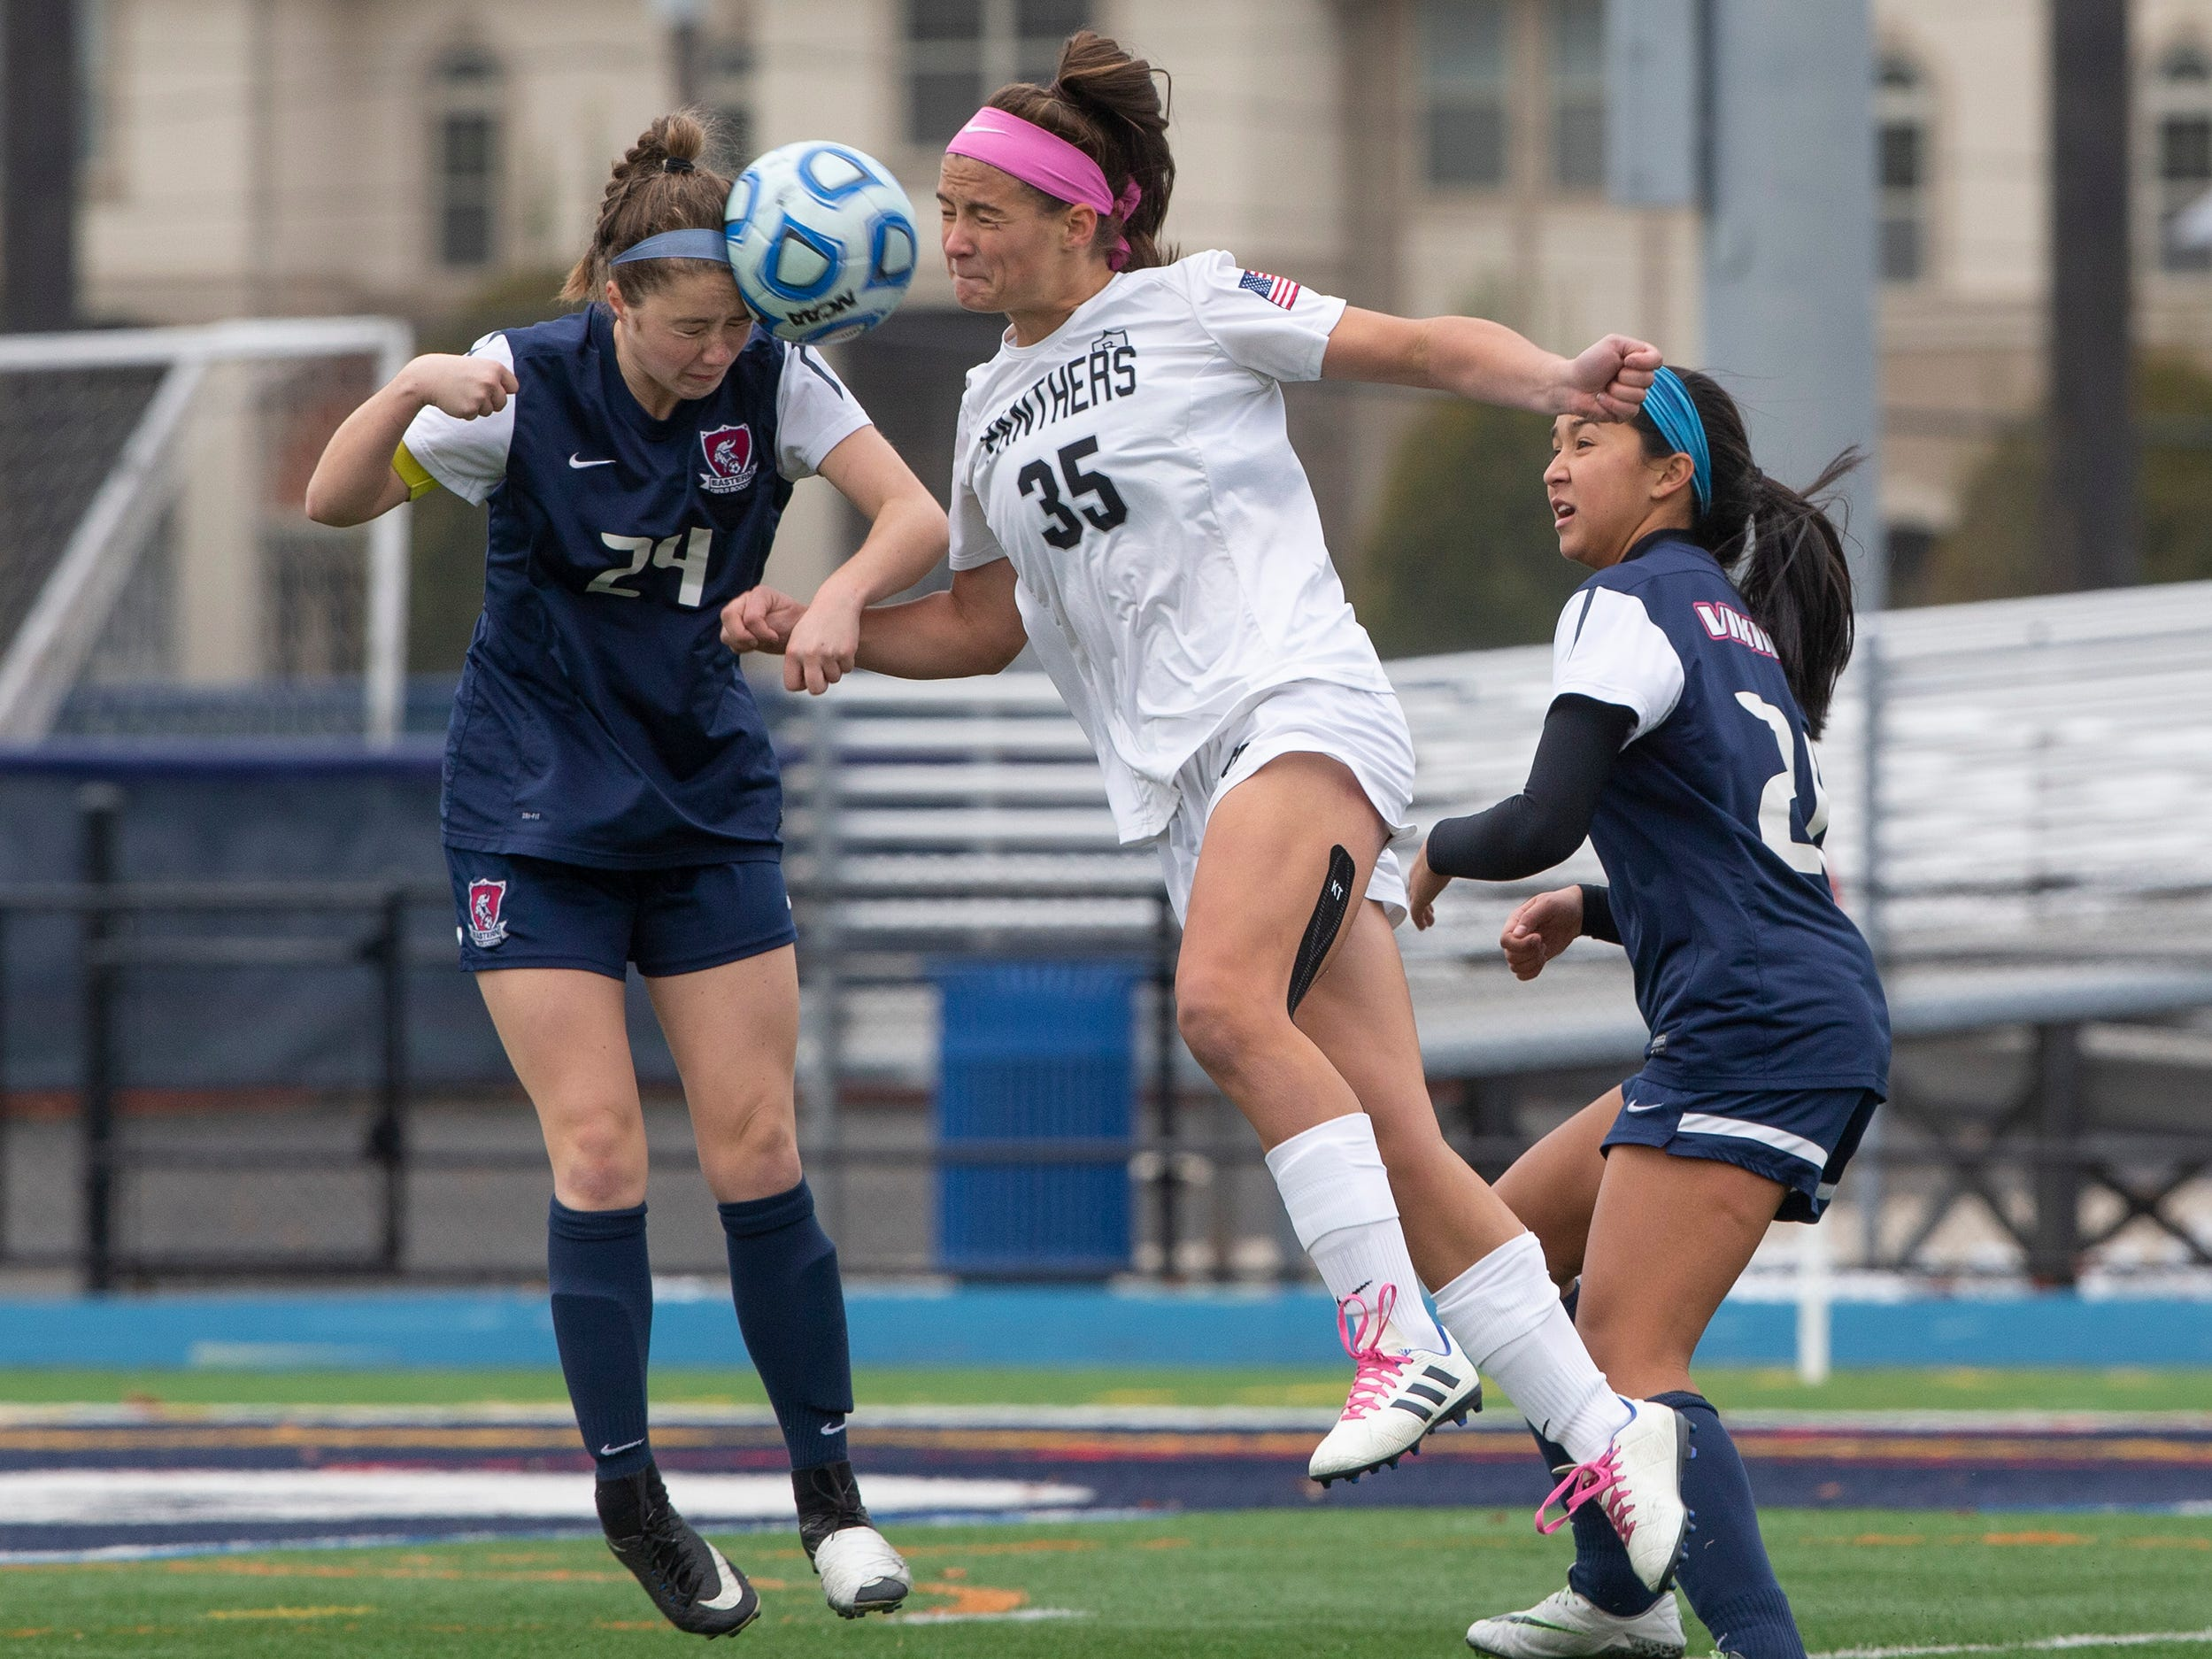 Eastern's Christina Dai and Bridgewater's Allison Lowrey battle for a header during second half action.Bridgewater-Raritan vs. Eastern girls soccer in the NJSIAA Group IV final at Kean University.